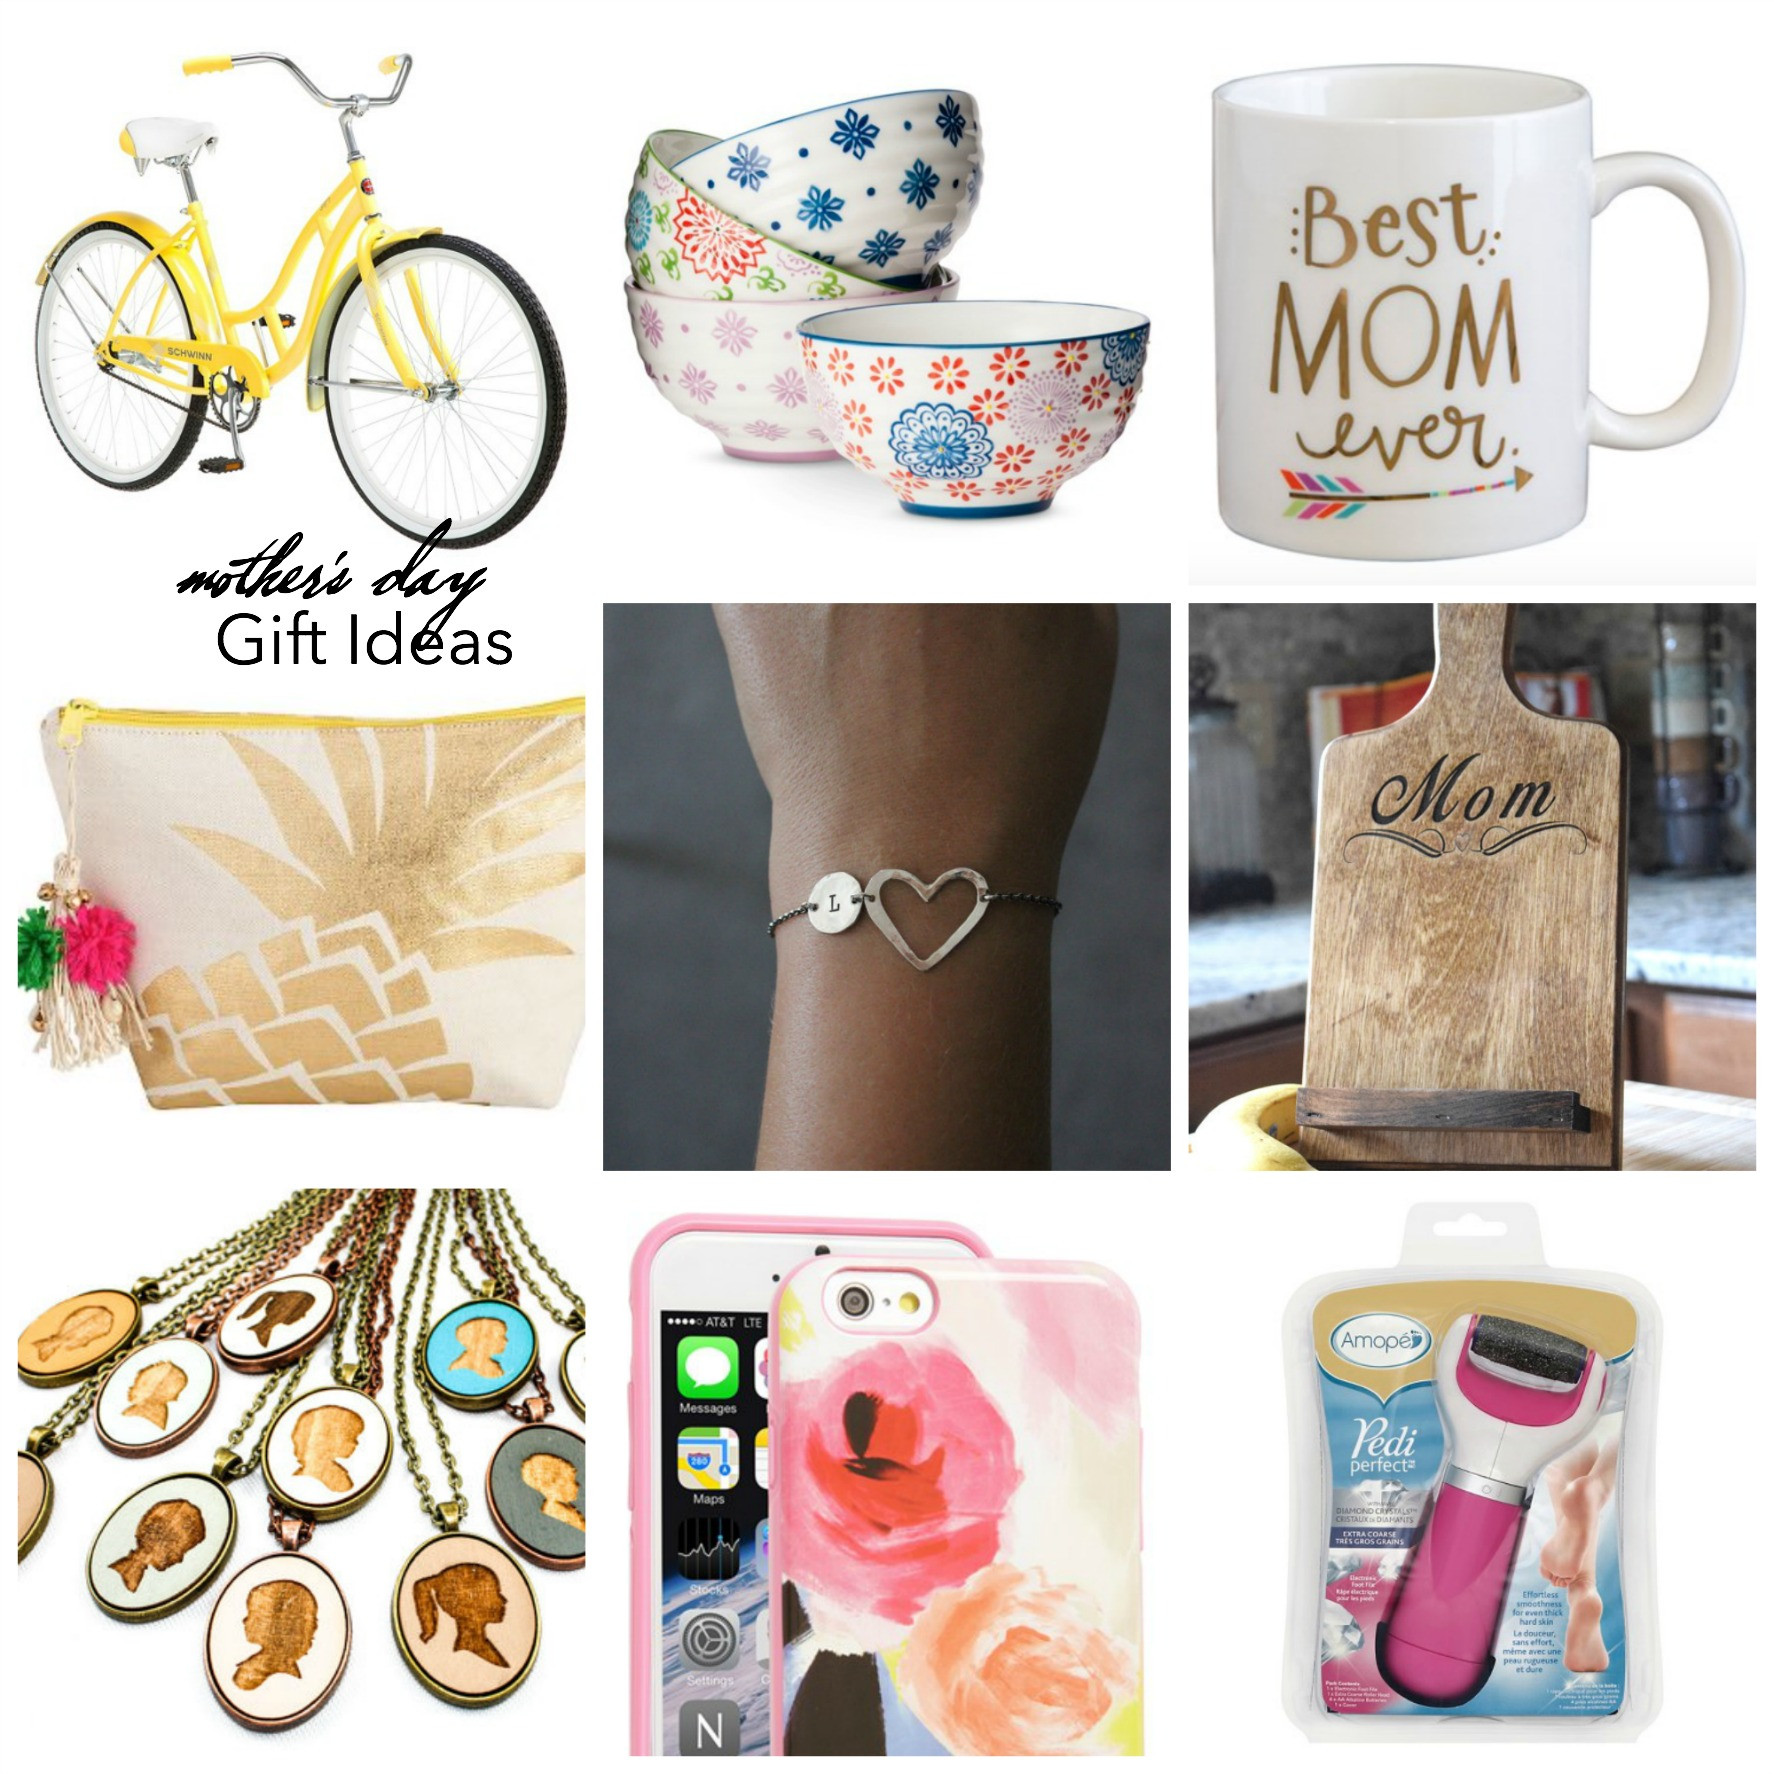 Best Mother Day Gift Ideas  43 DIY Mothers Day Gifts Handmade Gift Ideas For Mom